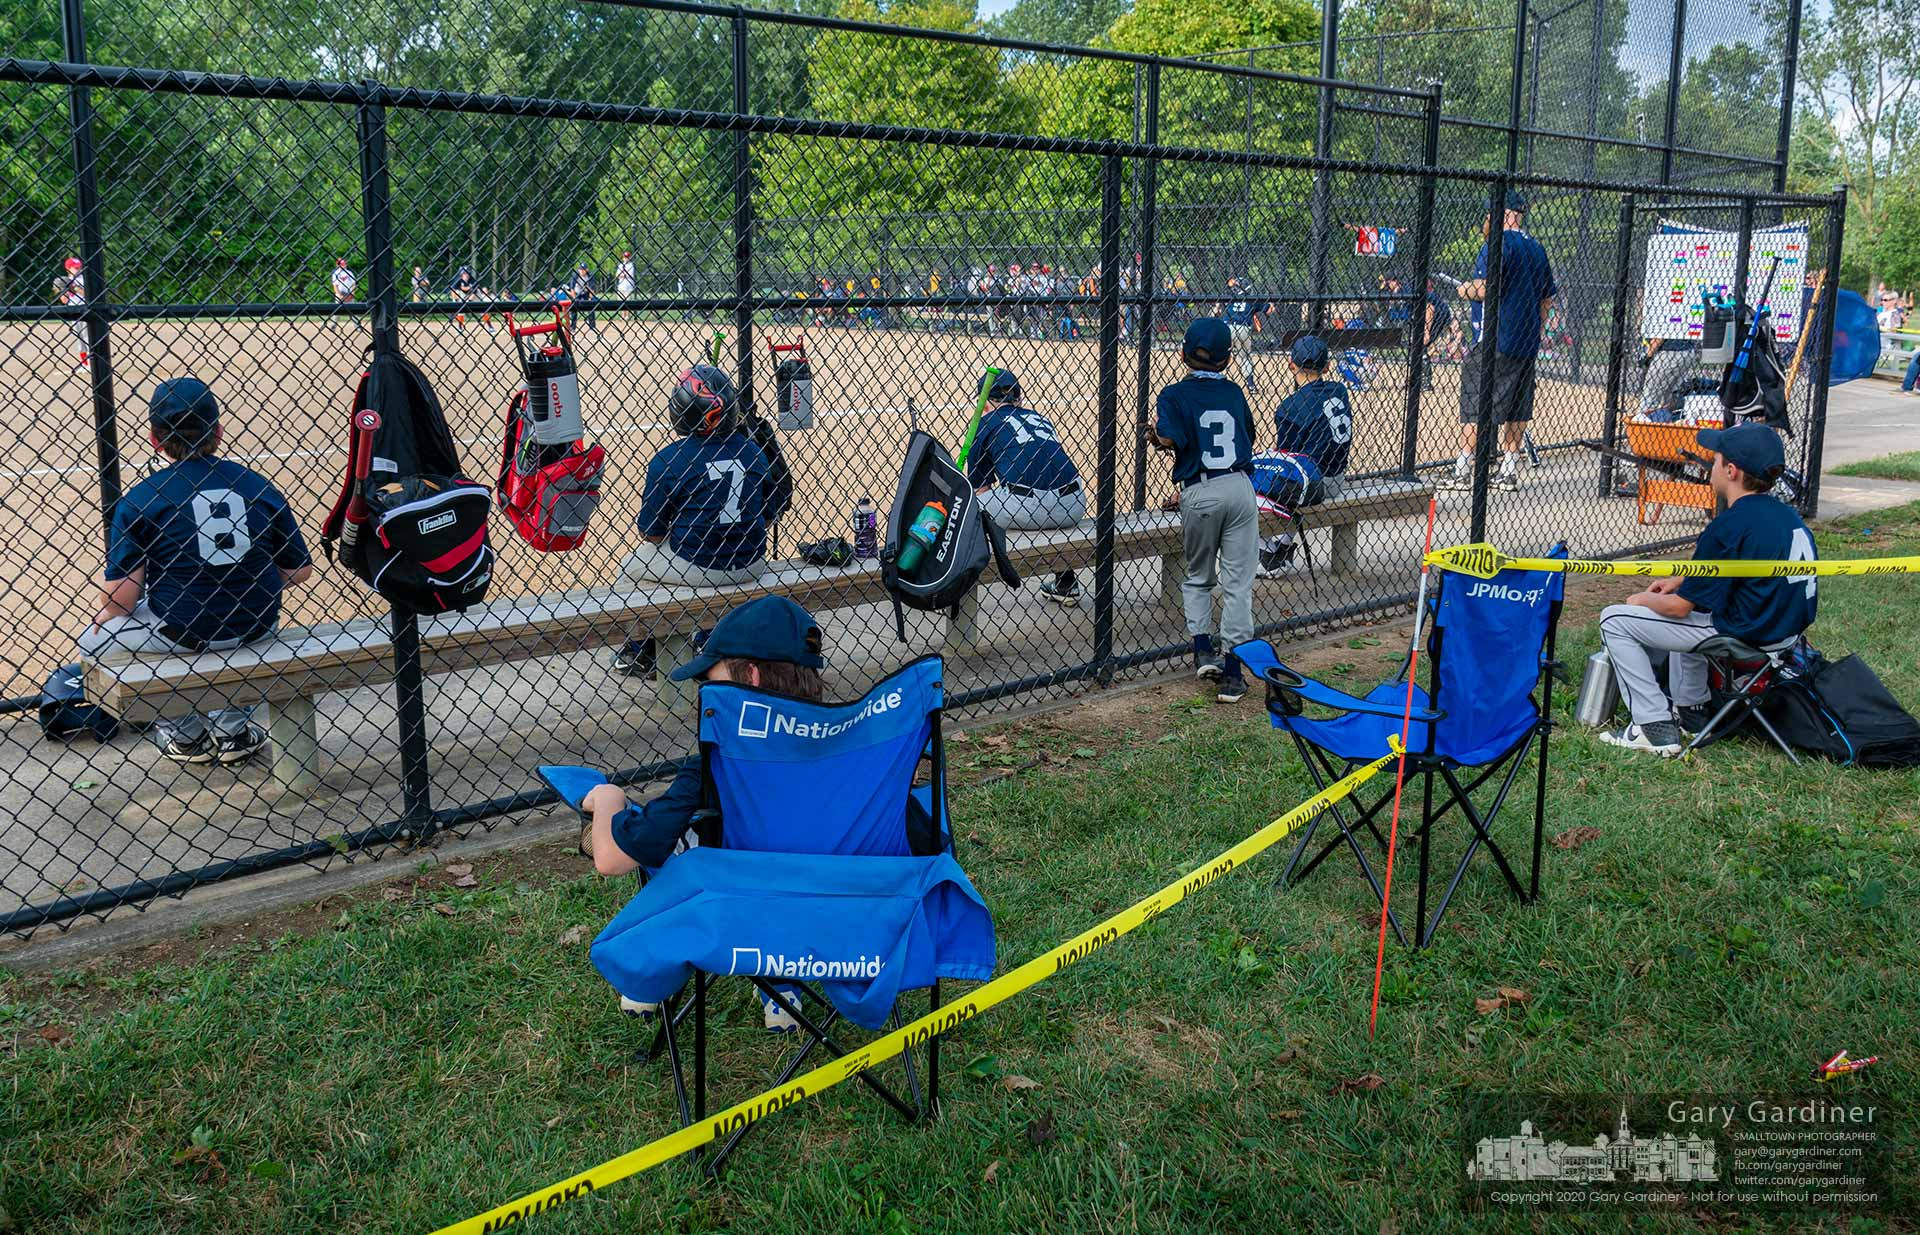 A youth baseball team sits in an improvised socially distanced bench at one of the fields at Huber Village Park. My Final Photo for Aug. 27, 2020.